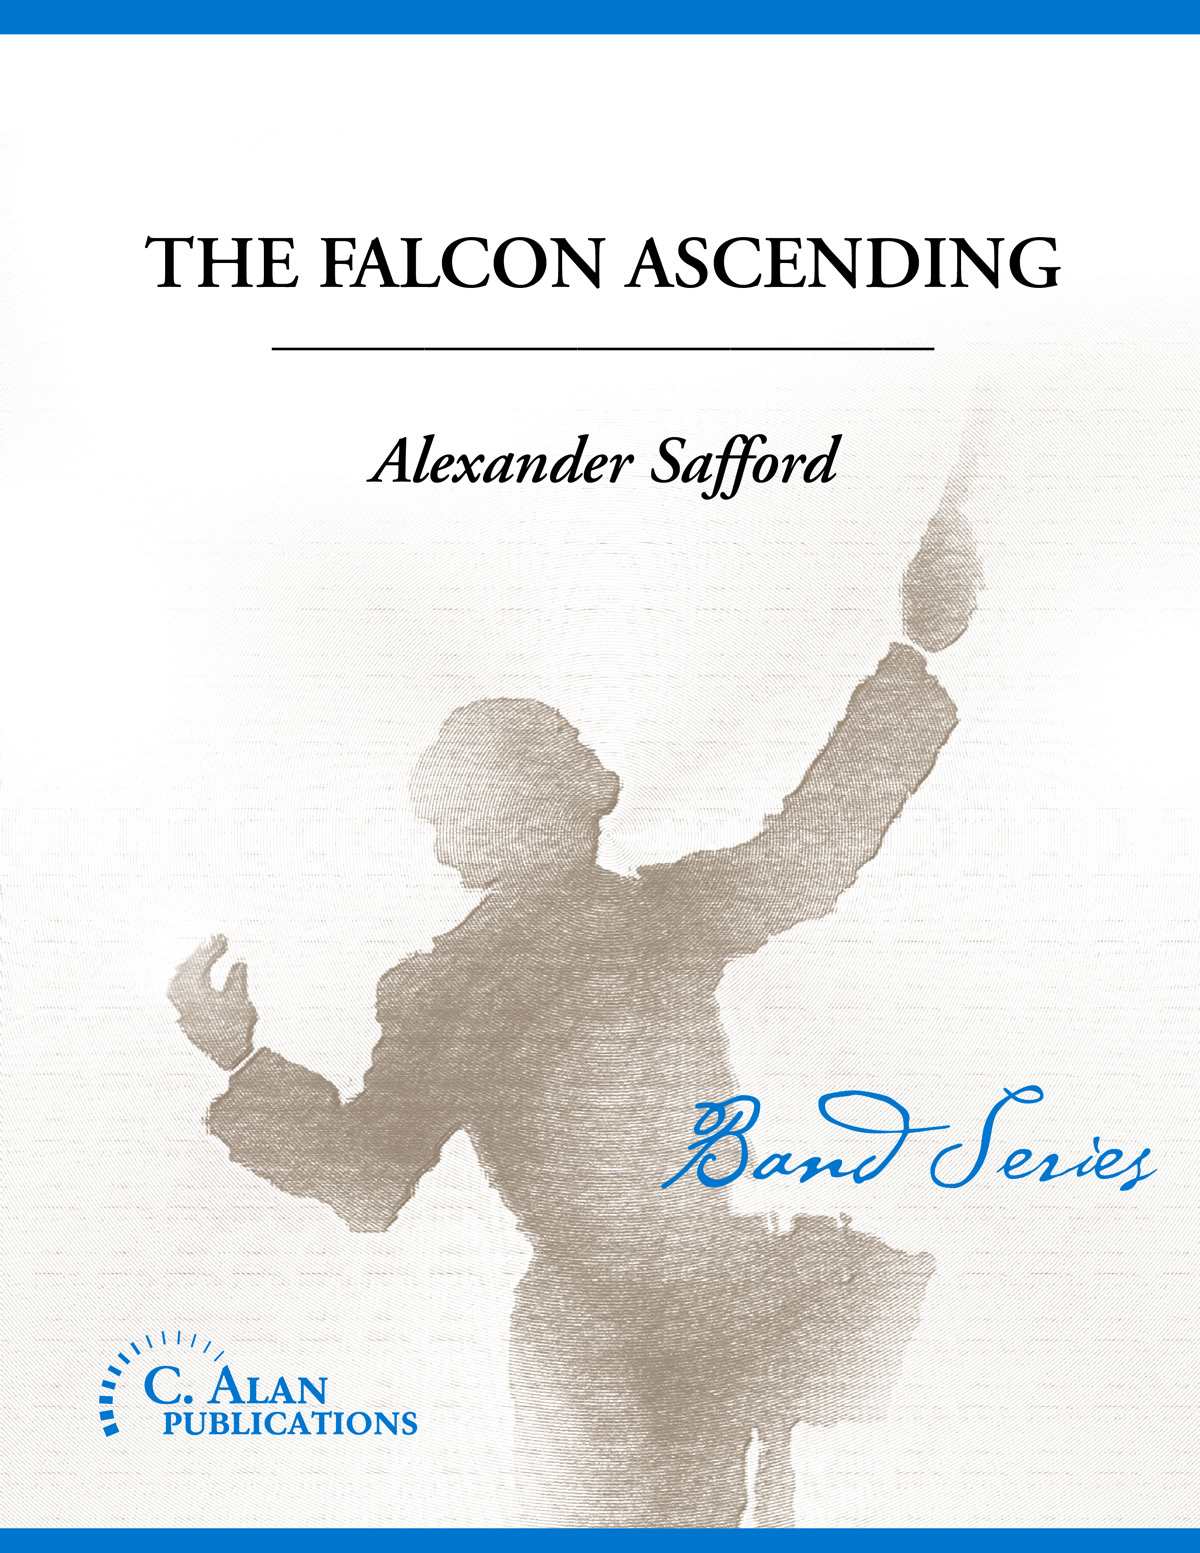 The Falcon Ascending